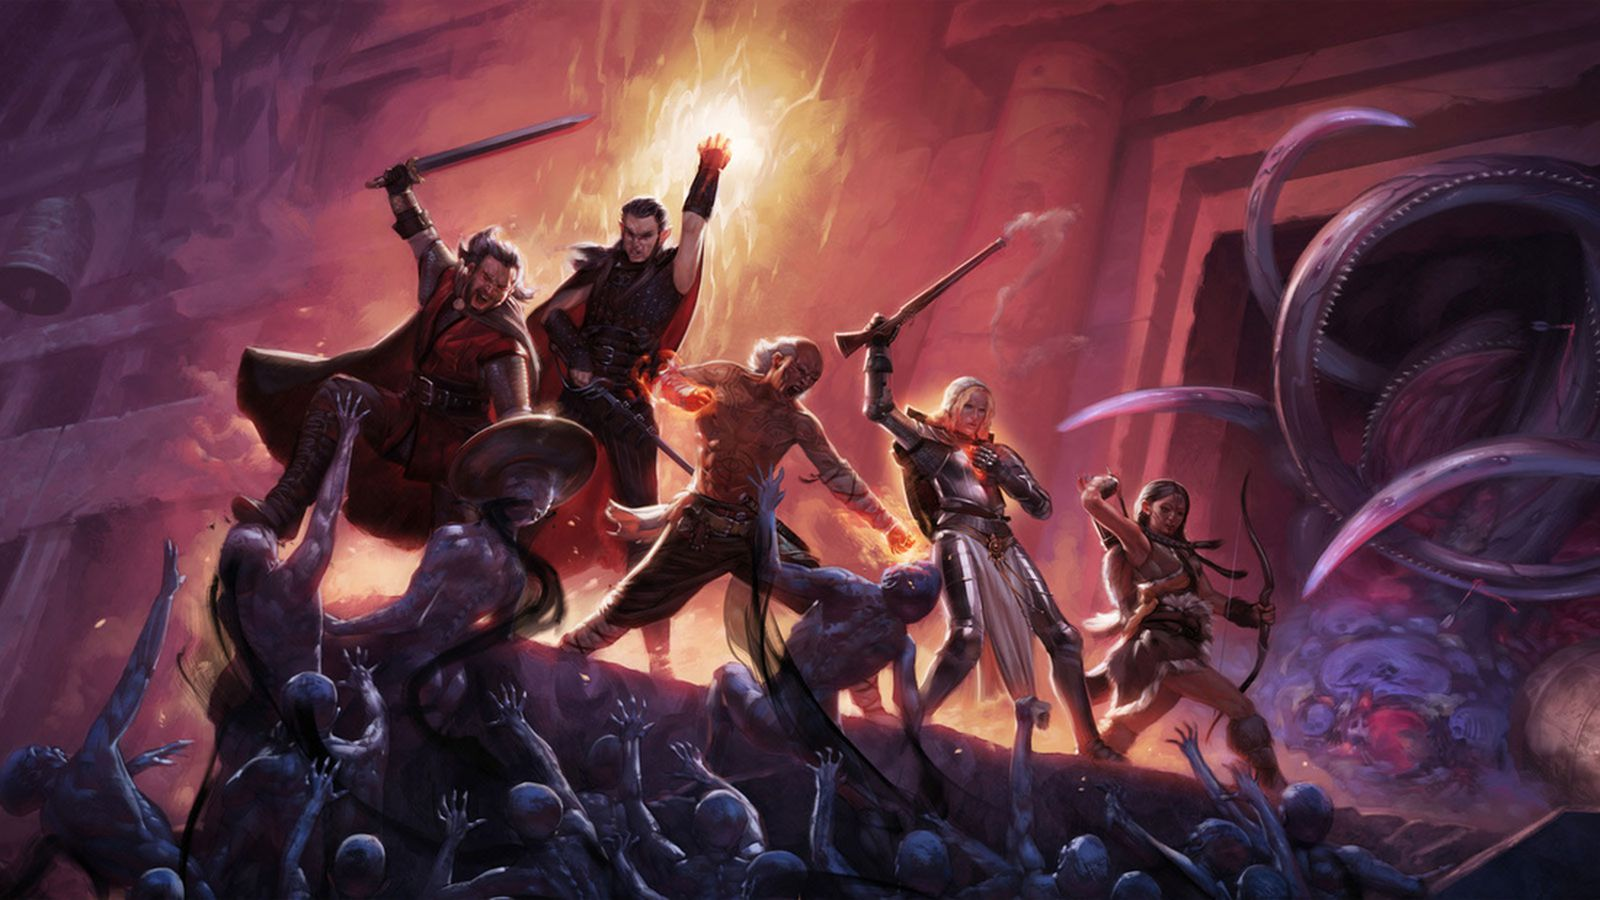 Pillars of Eternity coming to PS4 and Xbox One